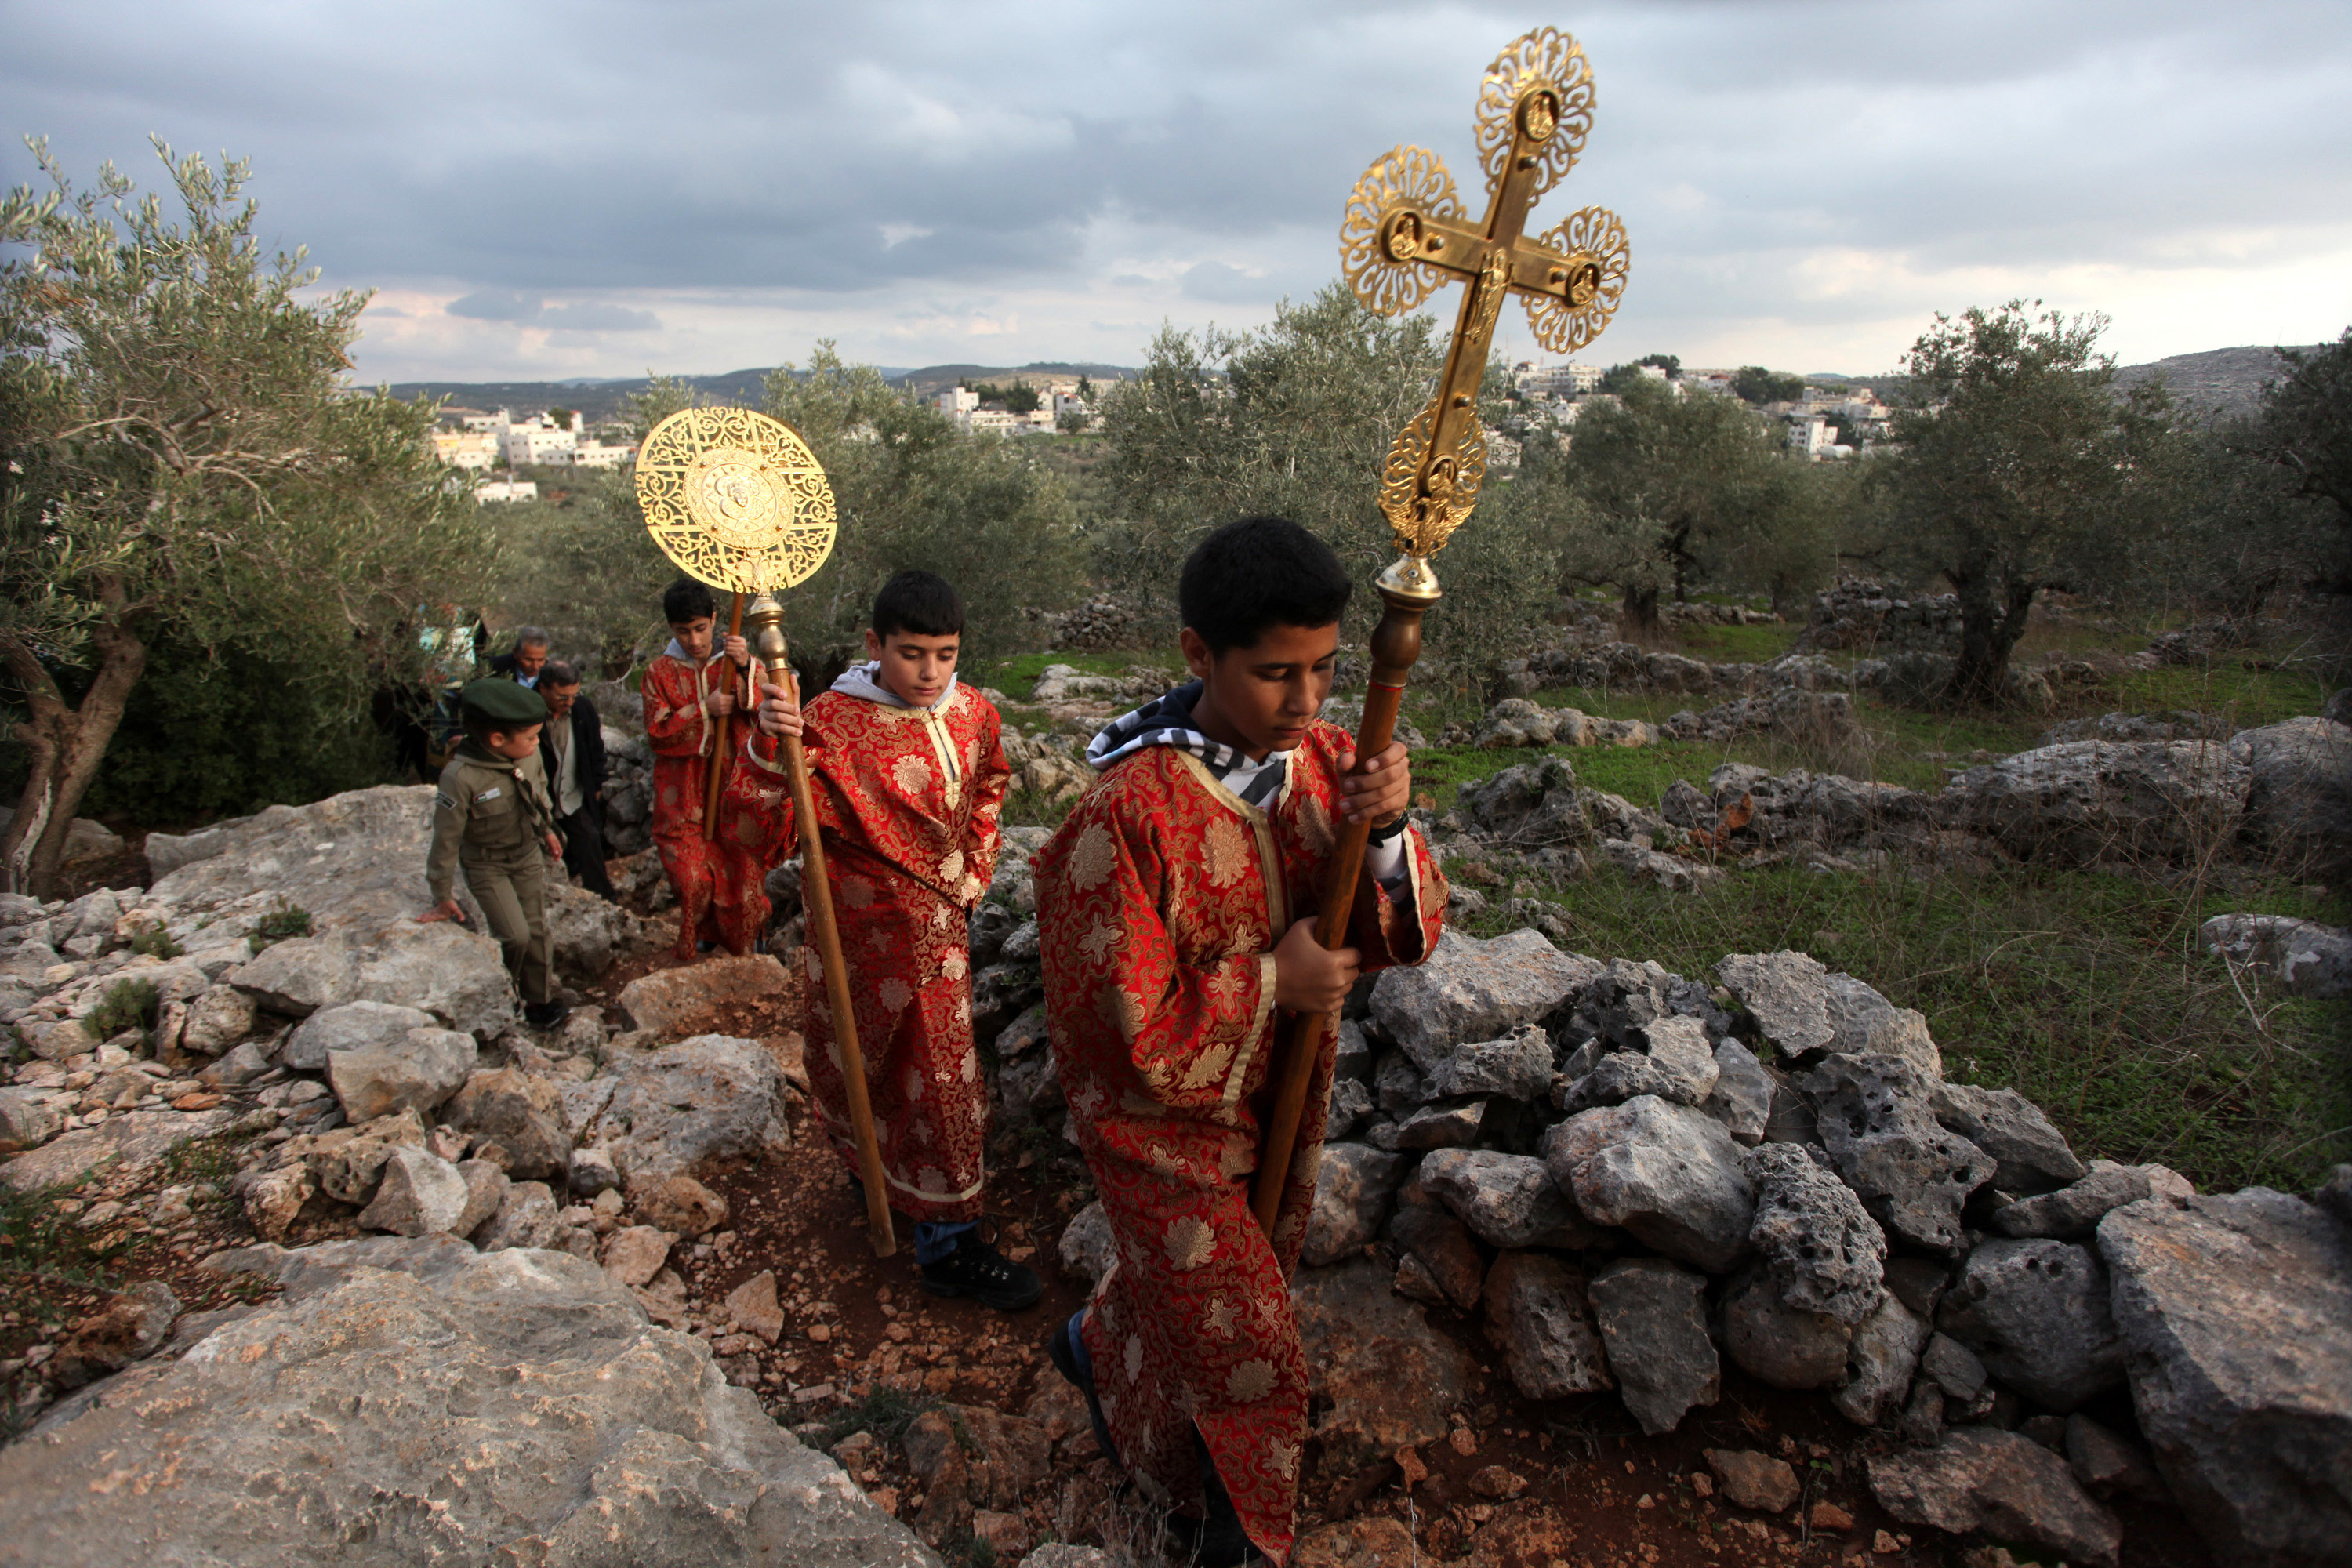 Palestinian Orthodox in procession at Aboud